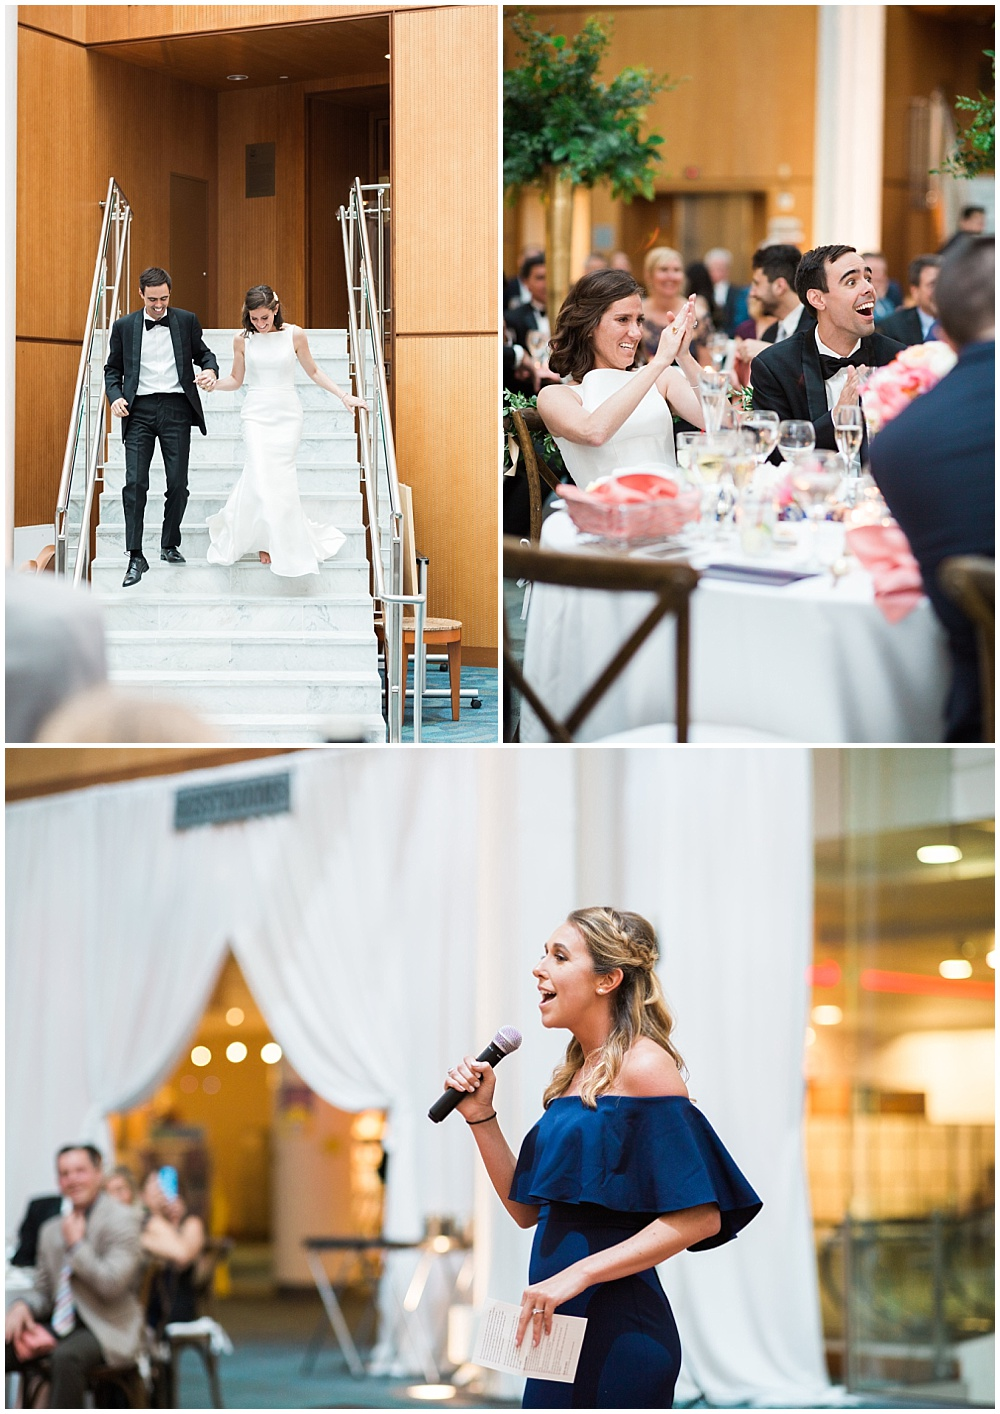 Bride and groom introductions. | Coral and navy Cape Cod-inspired downtown Indianapolis library wedding with Gaby Cheikh Photography and Jessica Dum Wedding Coordination